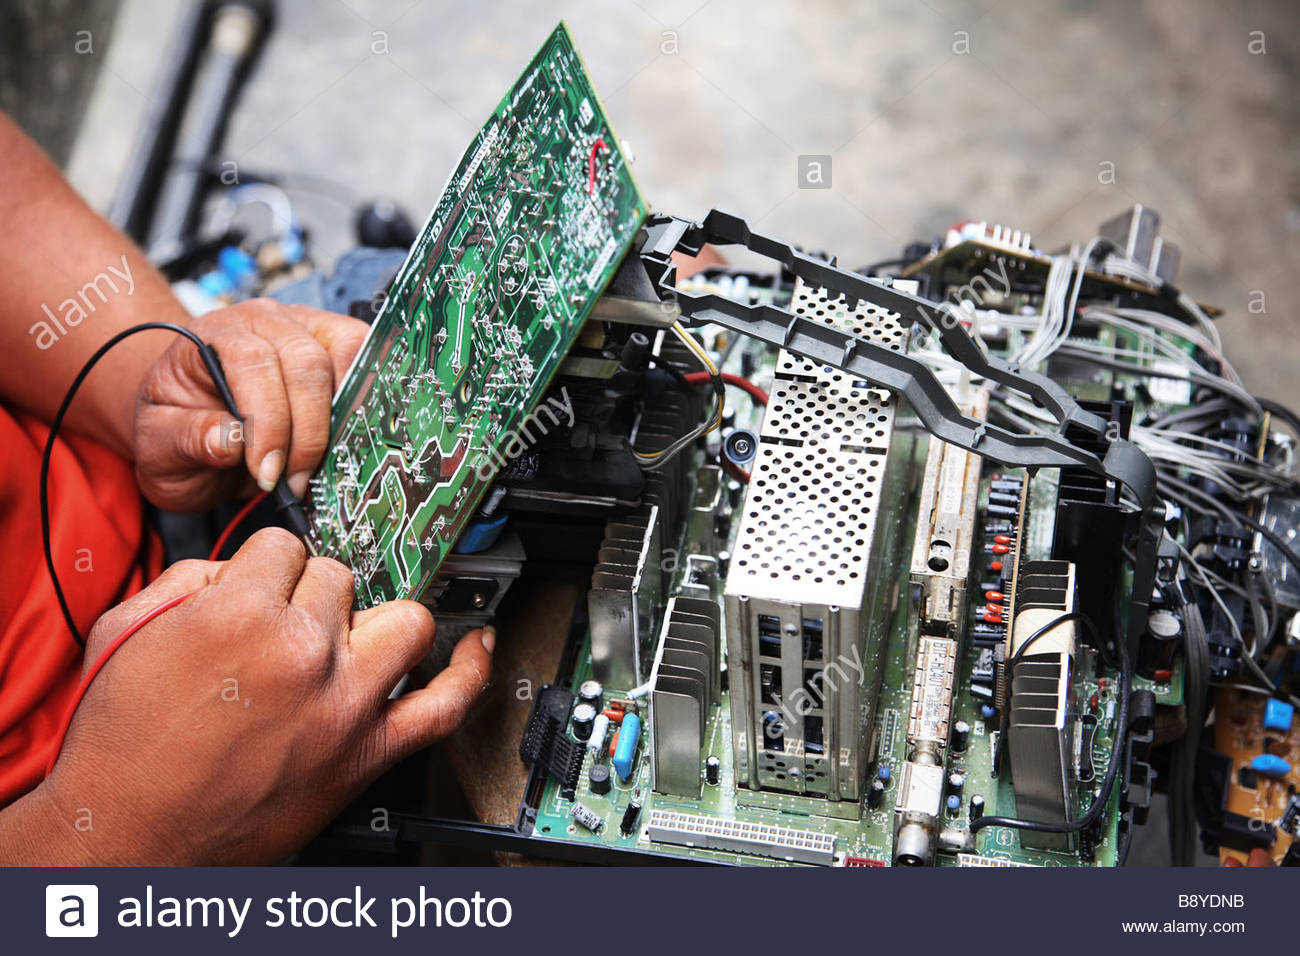 electronic-waste-in-nigeria-tons-of-e-waste-from-western-countries-B8YDNB